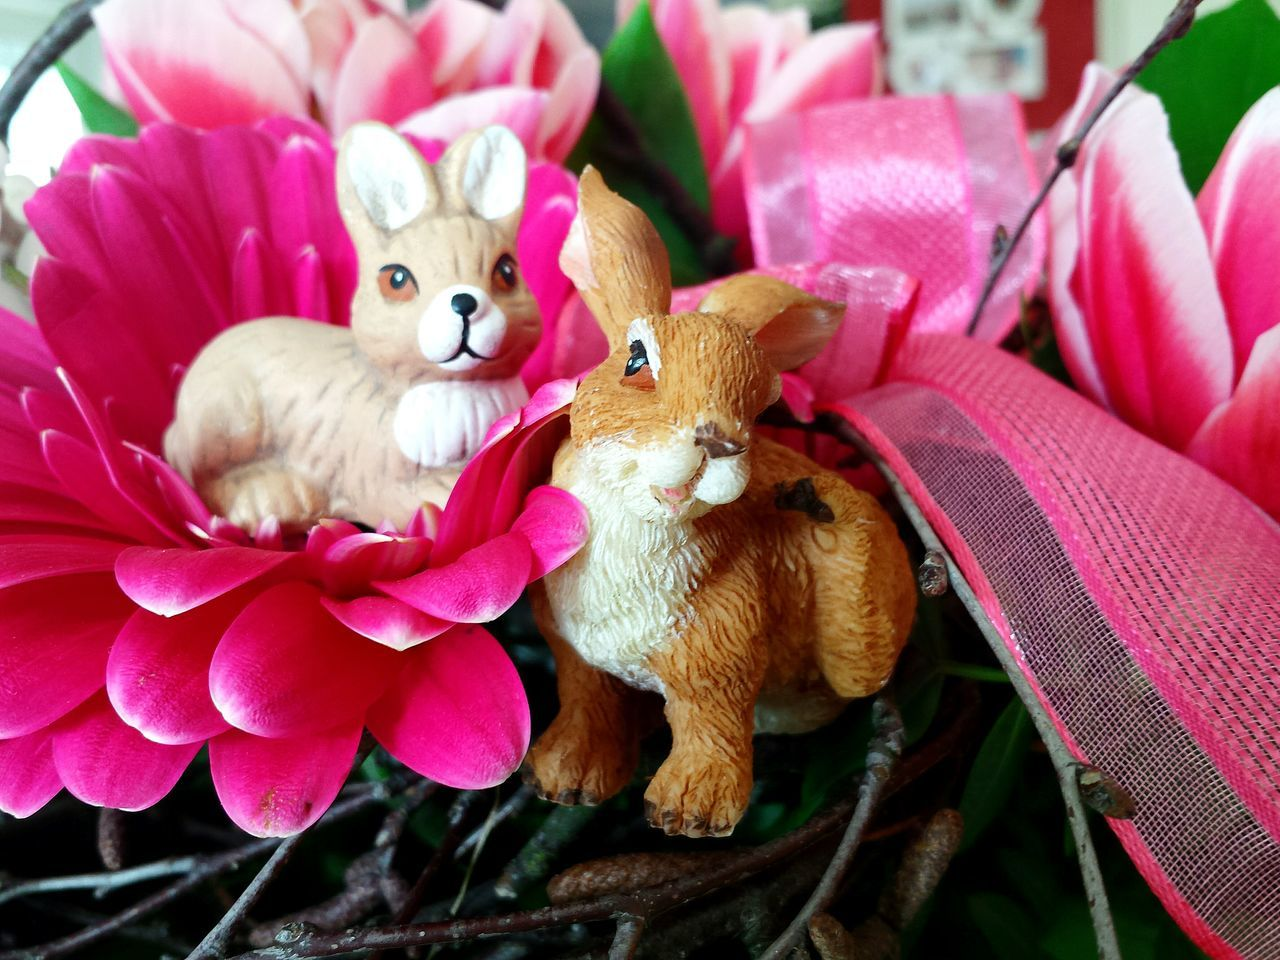 Ladyphotographerofthemonth Joyful Colours Easter Is Coming Soon Easter Bunnies  Easter Pink Pink Flower Pink Flowers Flower Power Flower Collection Flower Arangement Cute Easter Bunnies Cute Easter Decoration Easter Bunny Colourful Think Pink Easter Ready Here Belongs To Me